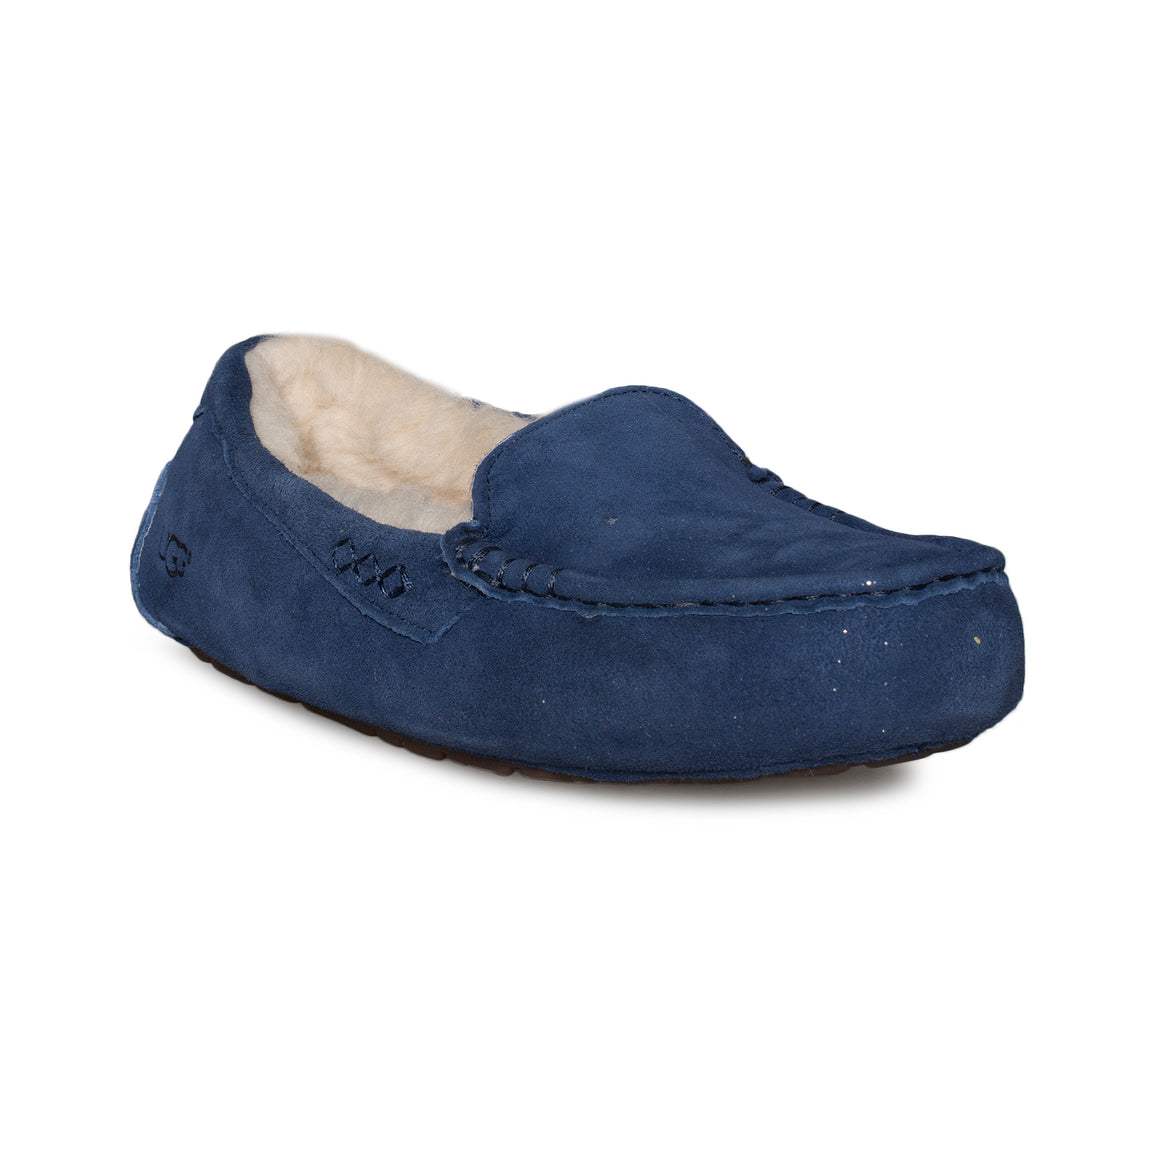 UGG Ansley Milky Way Dark Denim Slippers - Women's